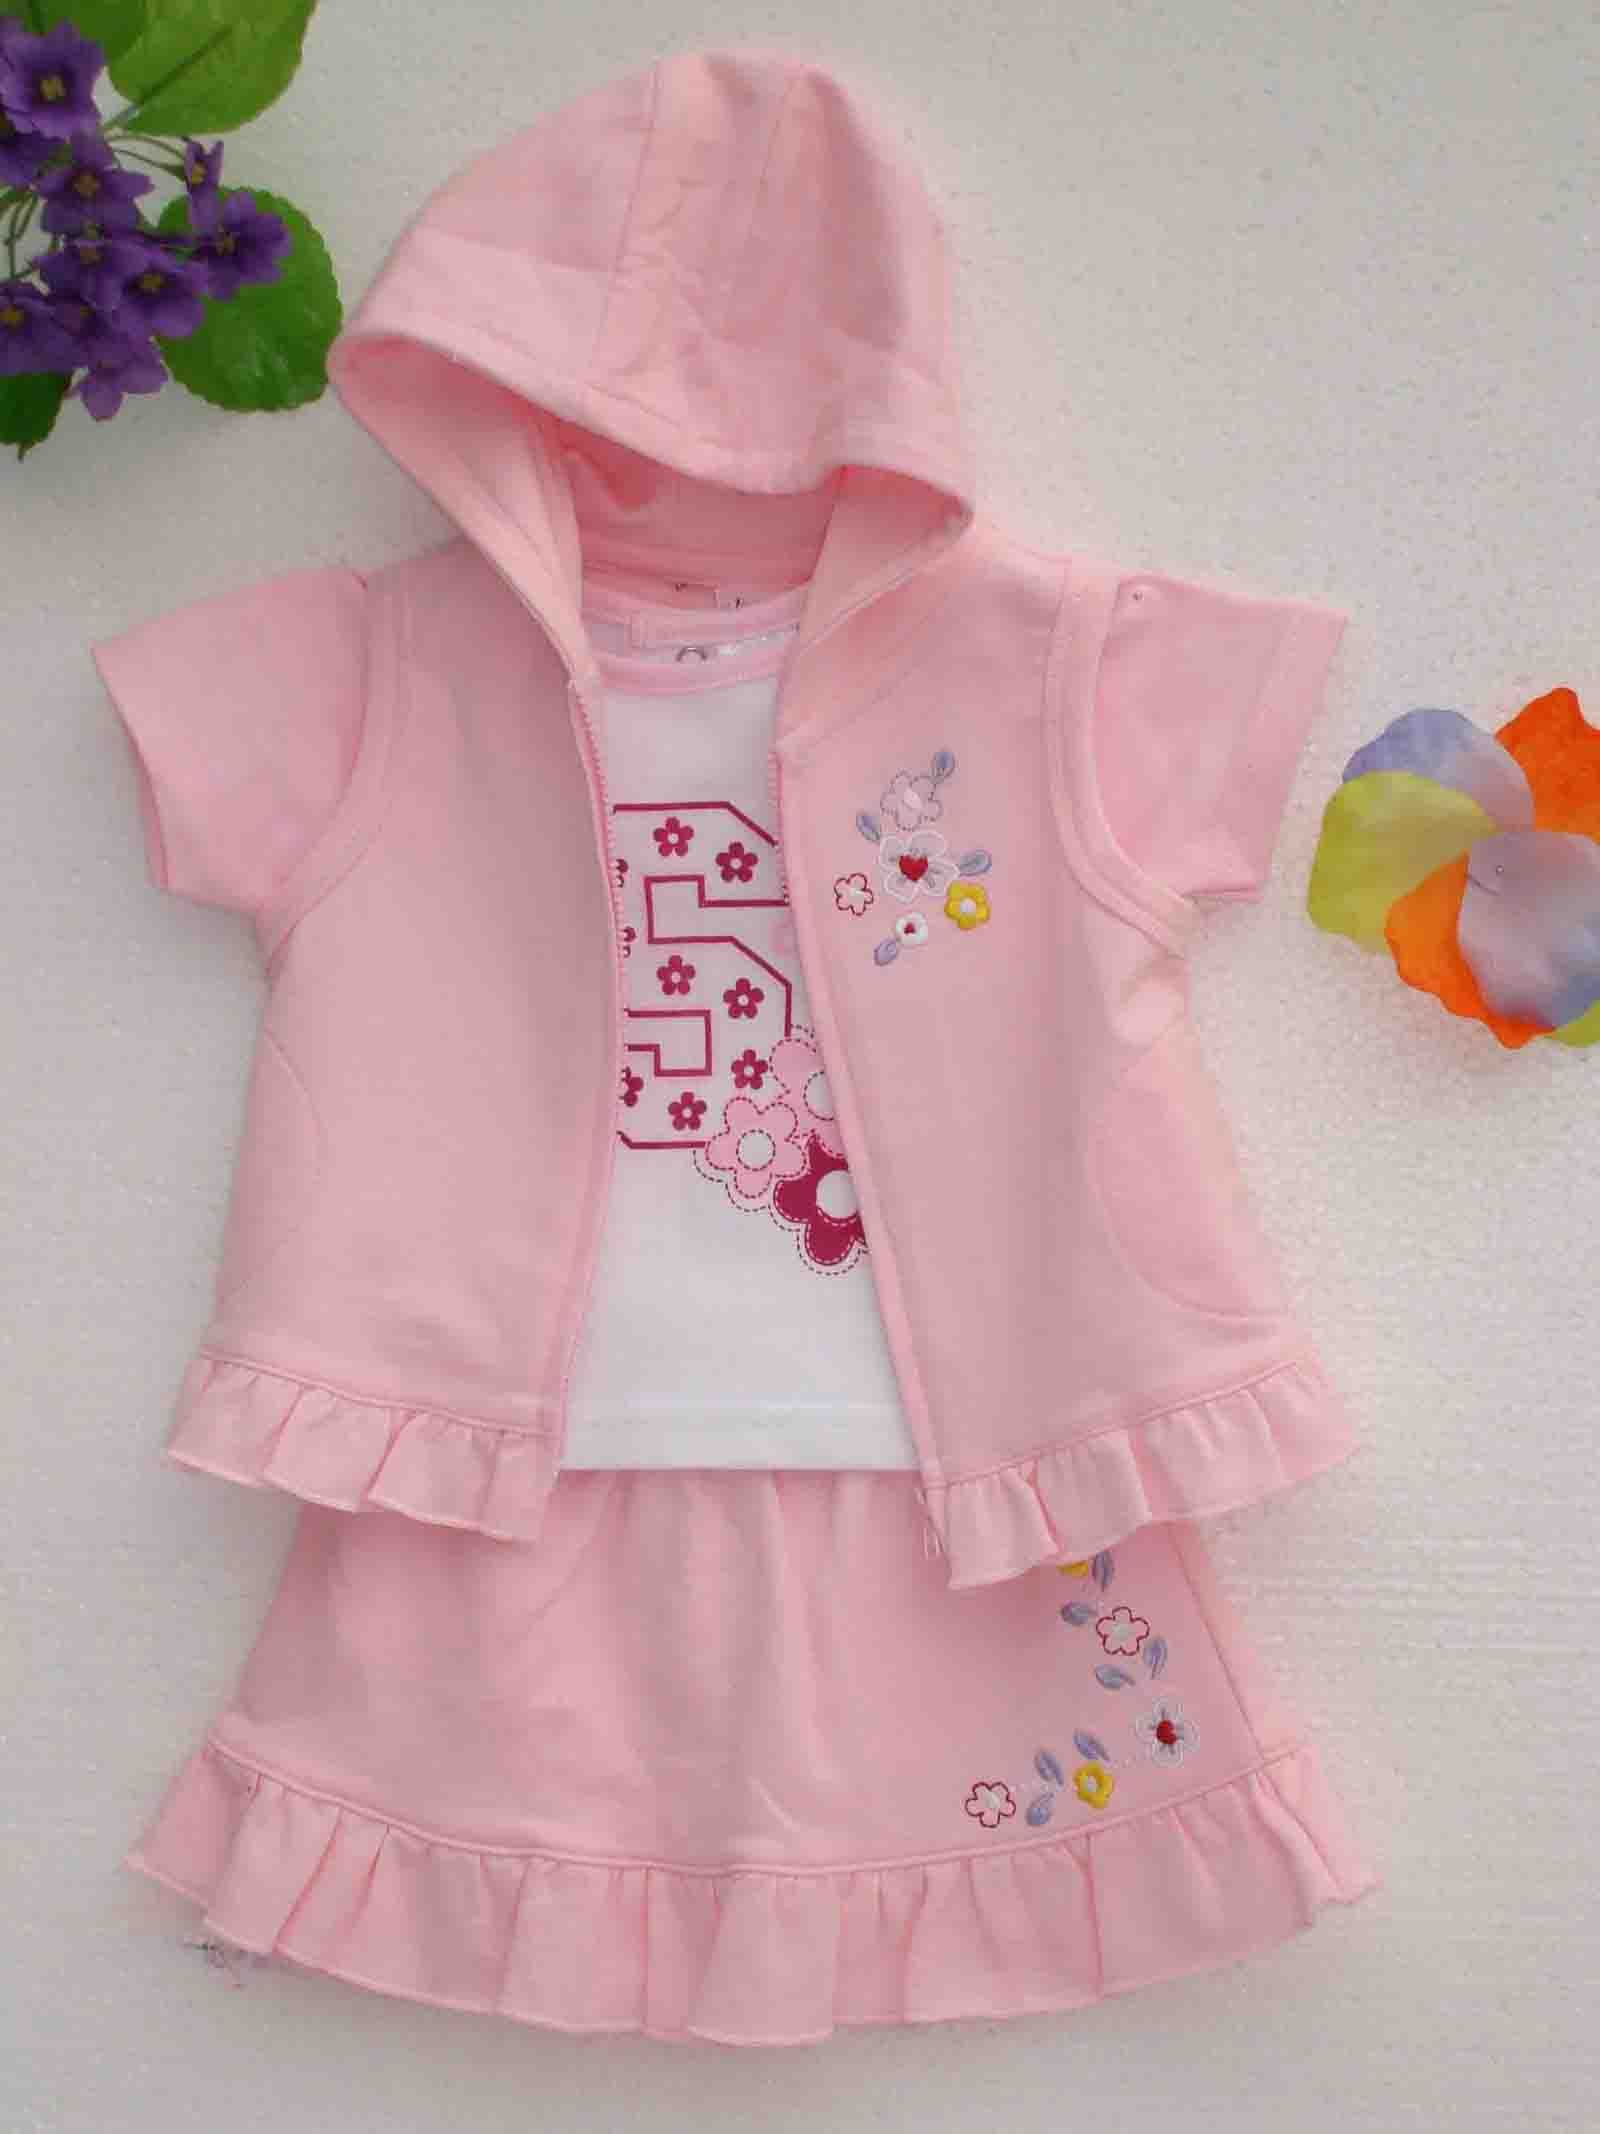 clothes for a baby - Kids Clothes Zone